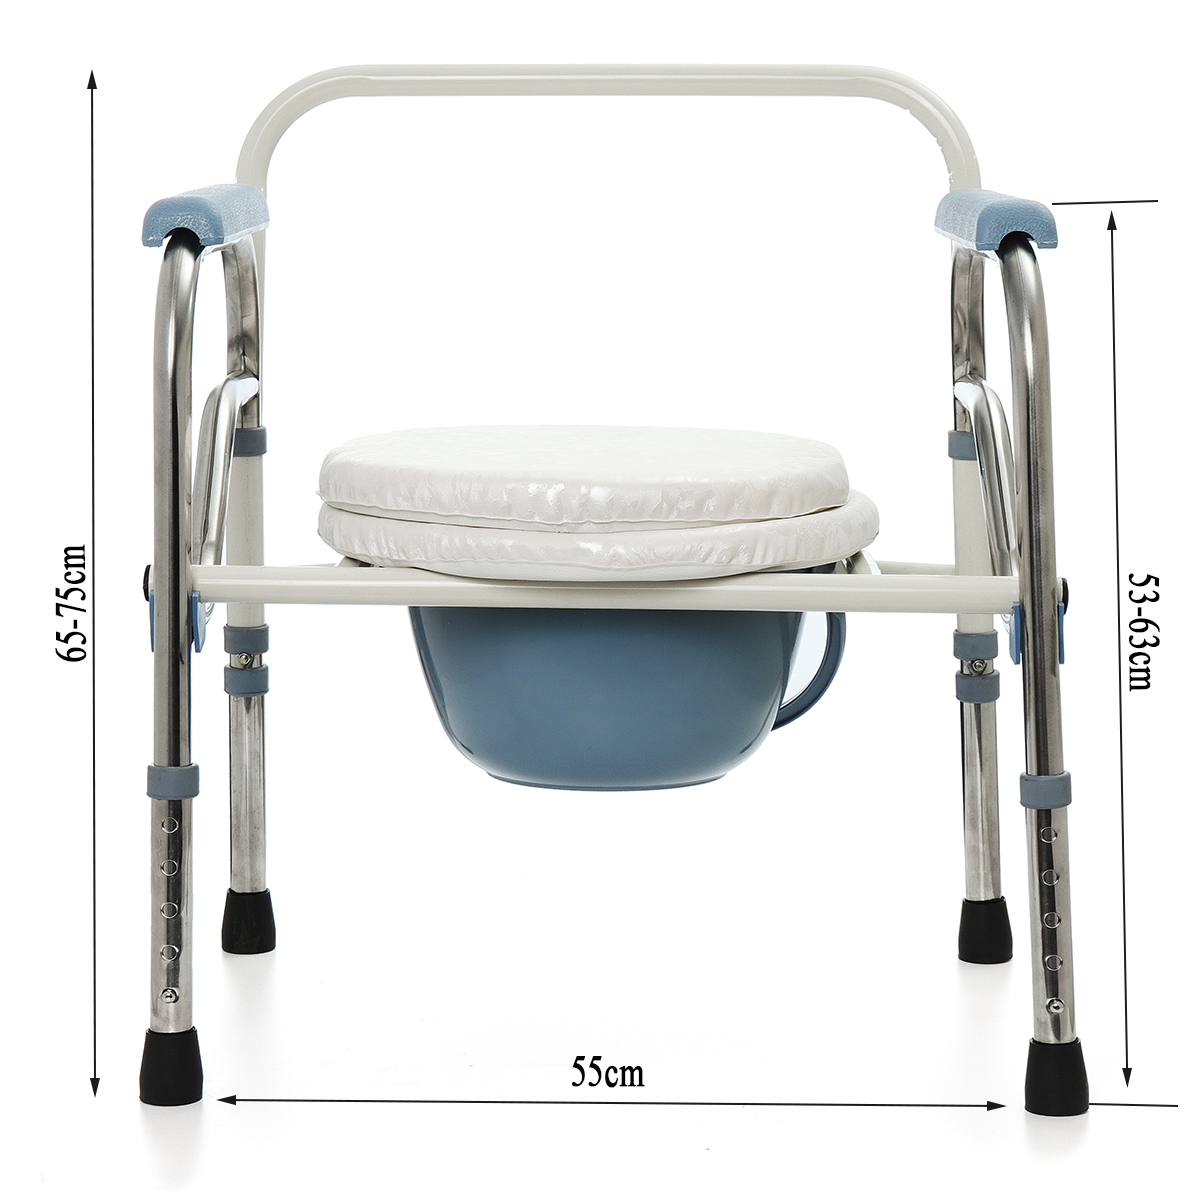 Folding Commode Chair Other Bath And Body Foldable Commode Toilet Safety Chair